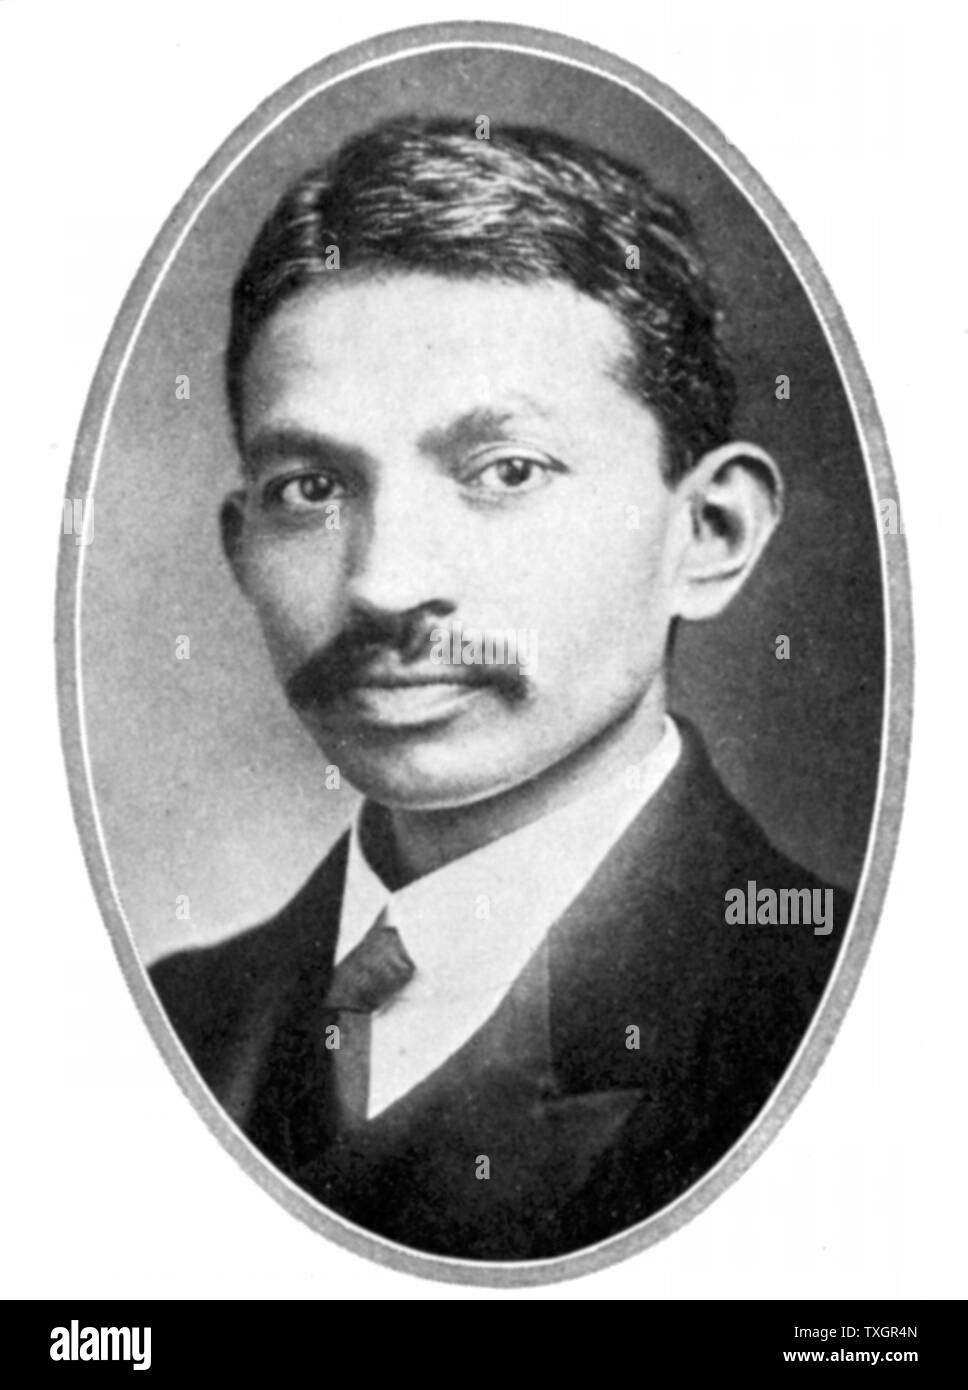 Mohondas Karamchand Gandhi  (1869-1948), known as Mahatma (Great Soul), as a young man. Indian Nationalist leader and organiser of the non-cooperative movement against British rule in India - Stock Image